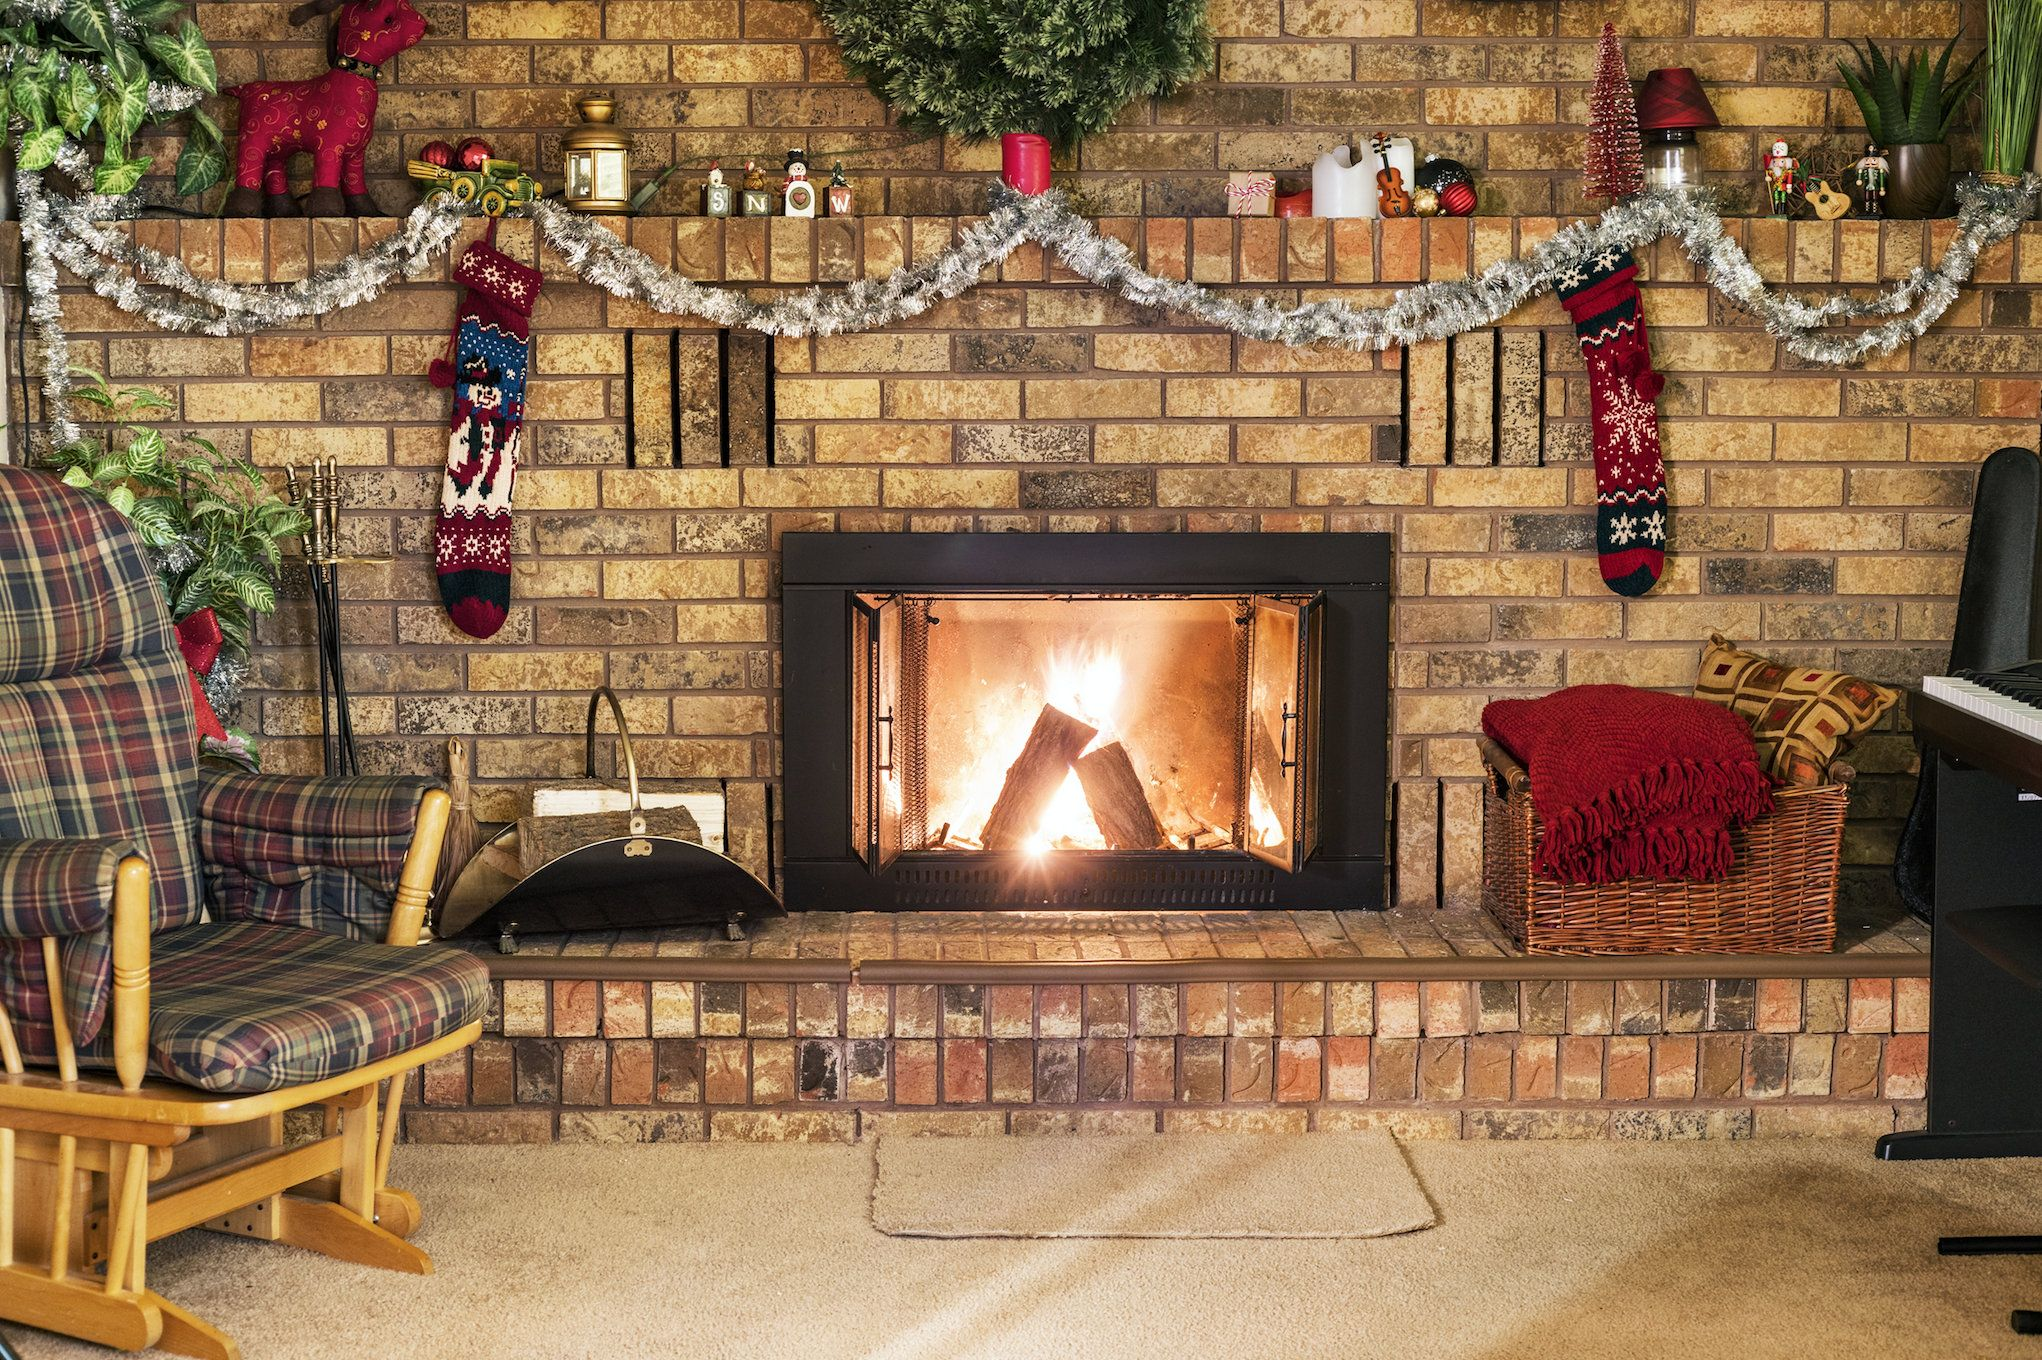 Christmas Brick Fireplace With Stockings By Backdropdesigns On Etsy